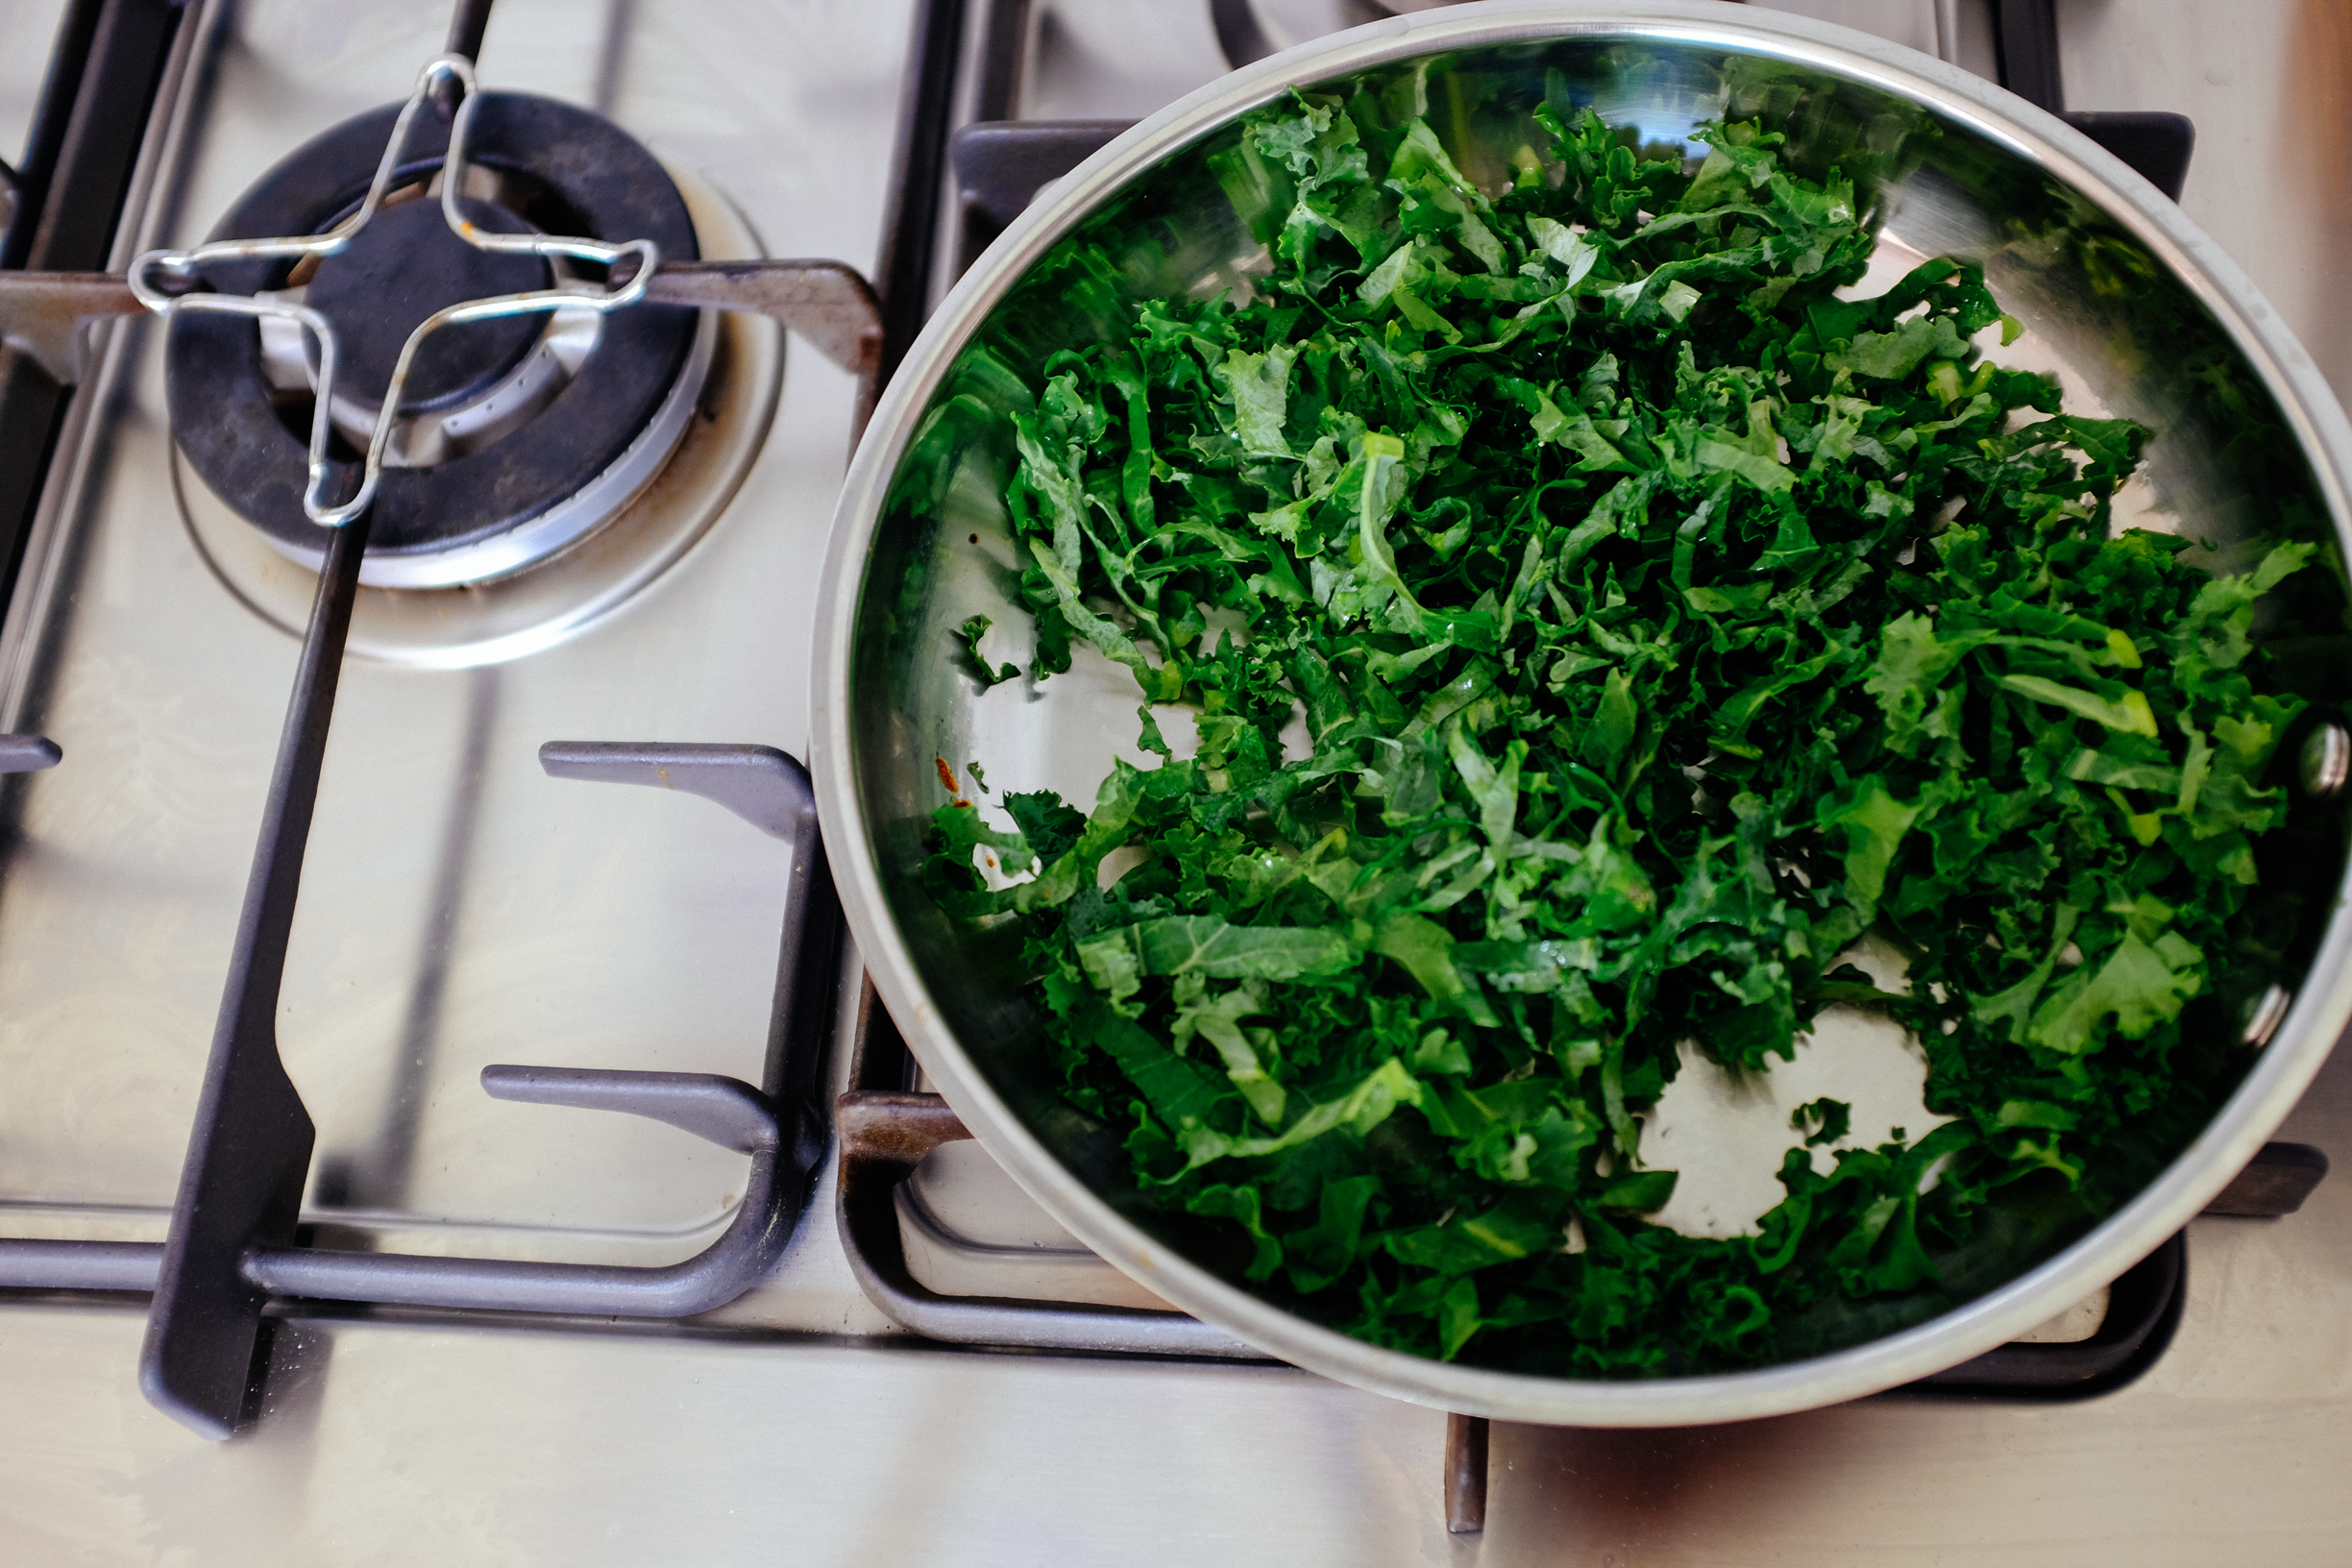 3-green-eggs-and-jam-kale-r